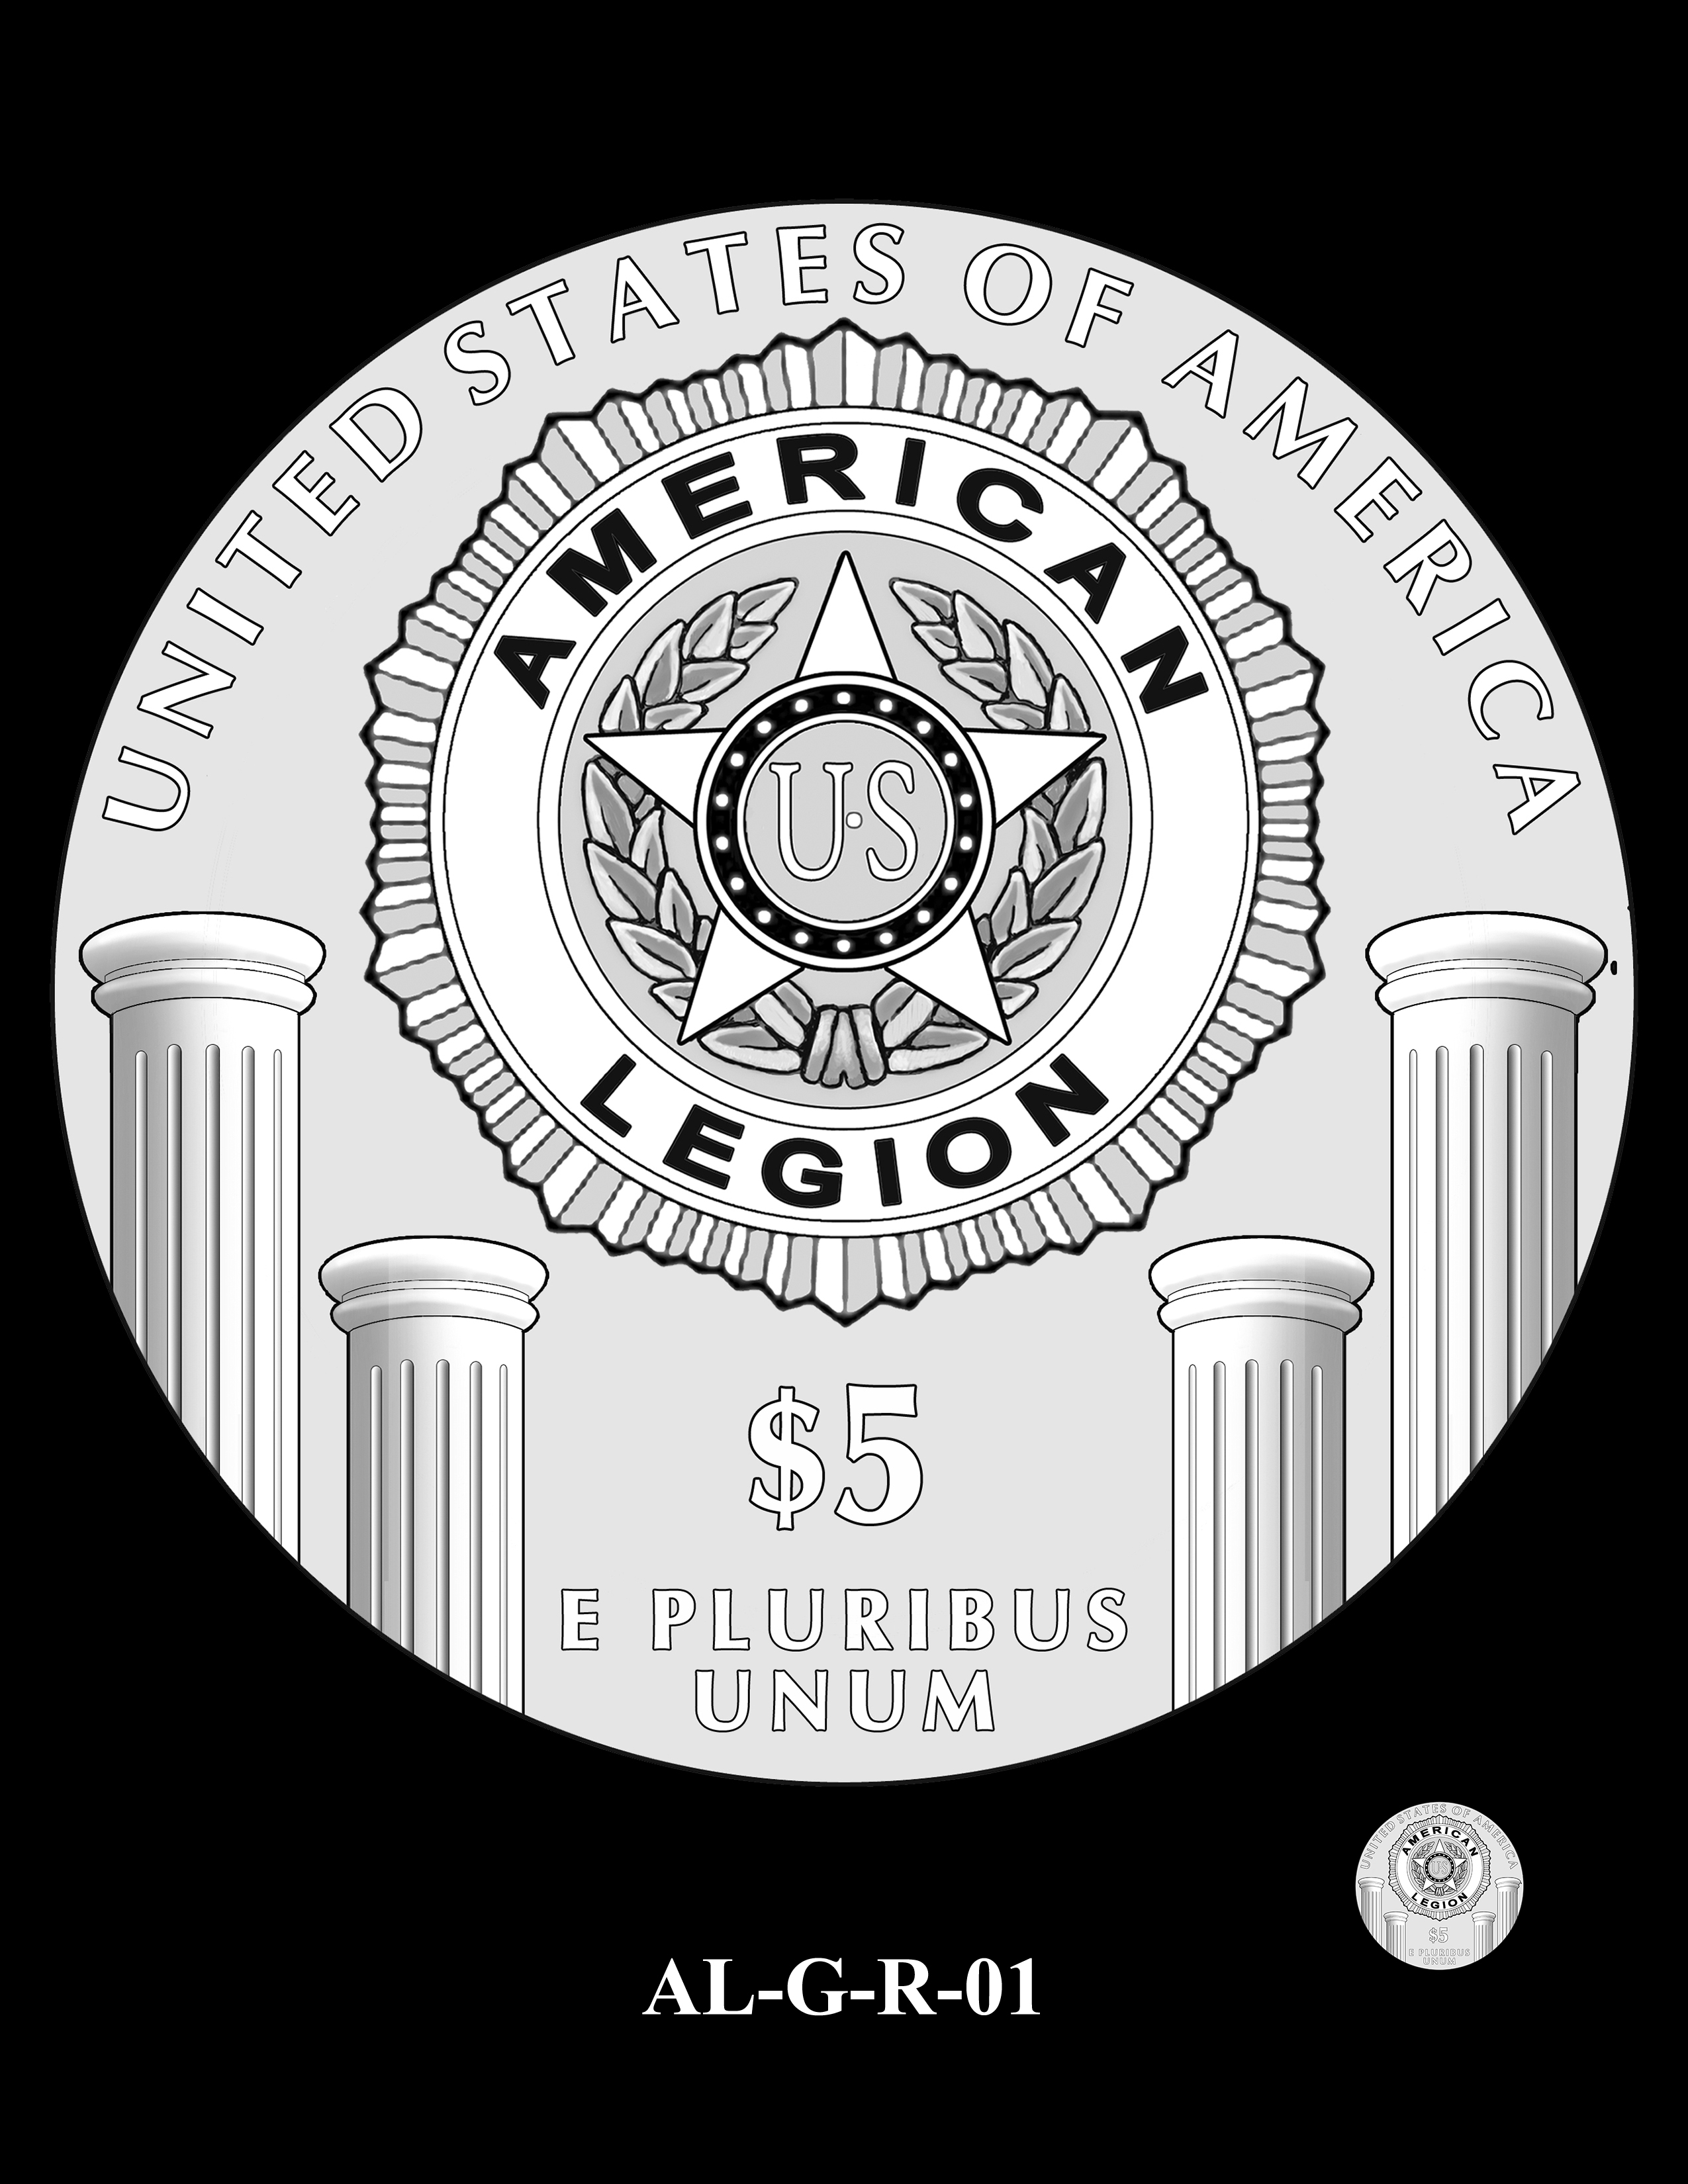 AL-G-R-01 -- 2019 American Legion 100th Anniversary Commemorative Coin Program - Gold Reverse